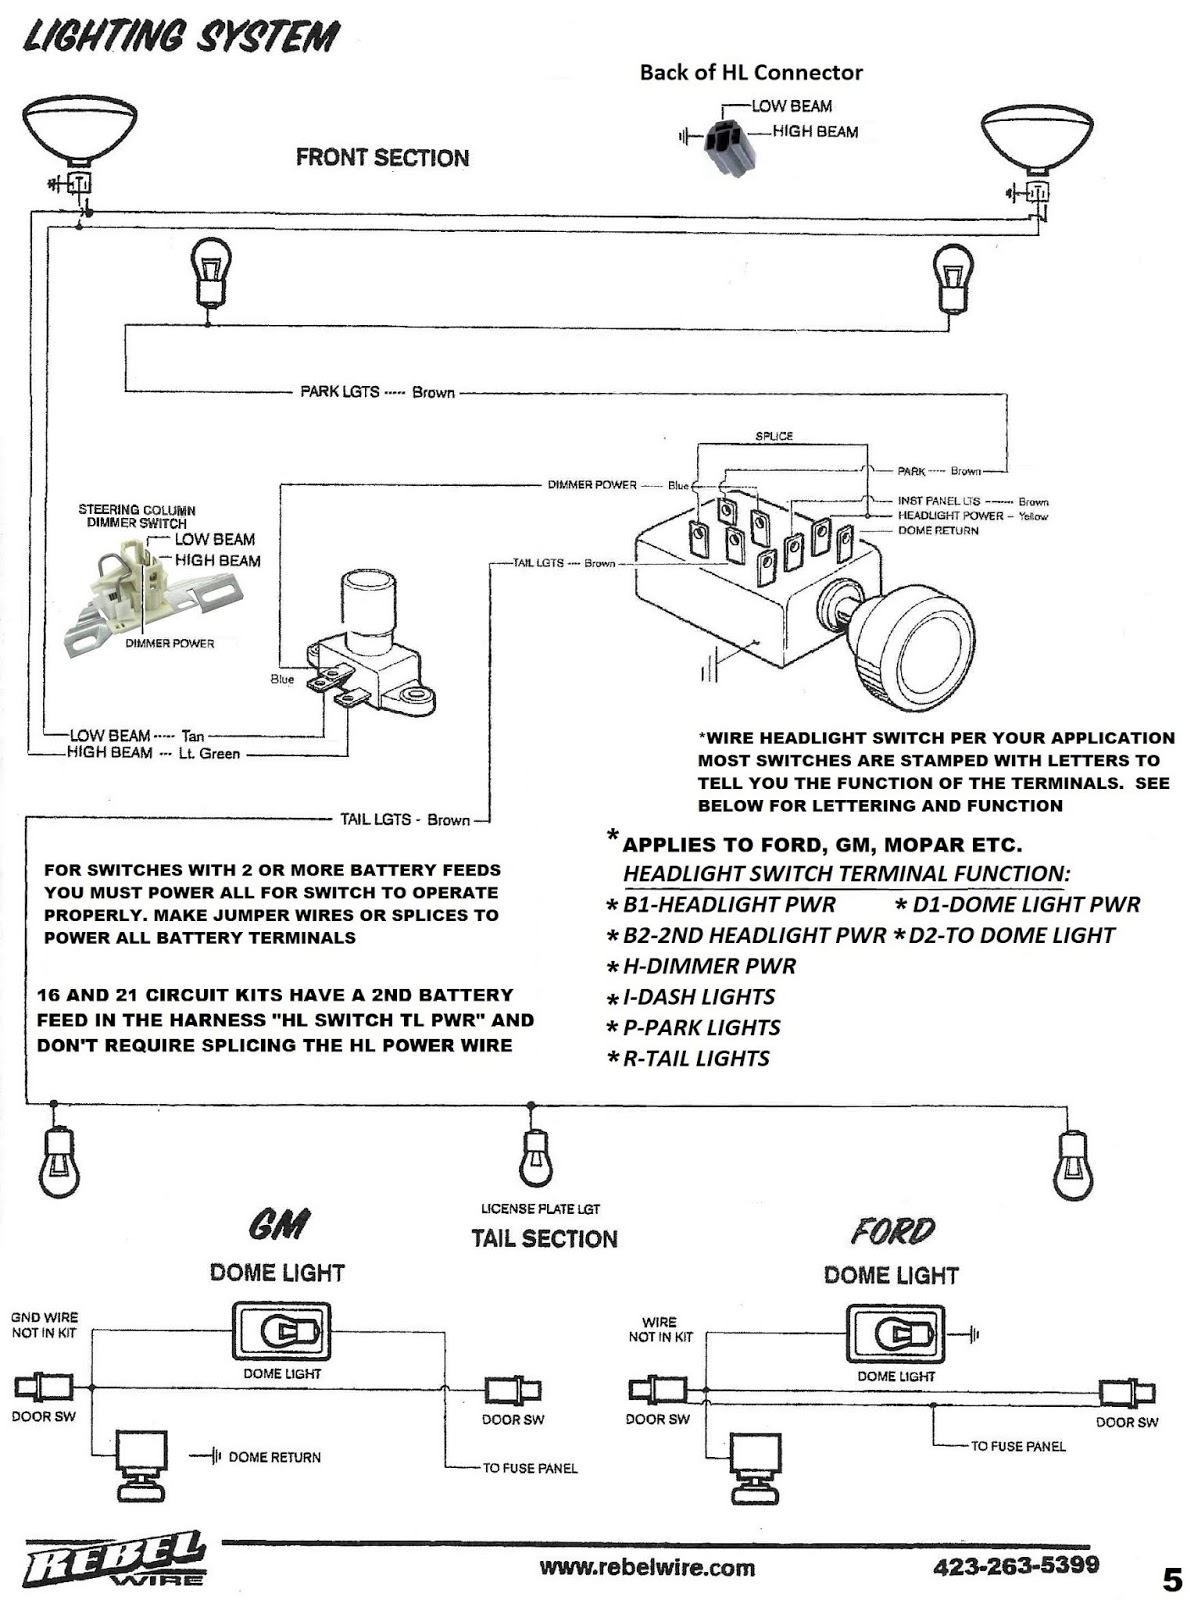 Rebel Wire Headlight Socket Wiring Diagram P 60s Cadillac Switch Lighting System